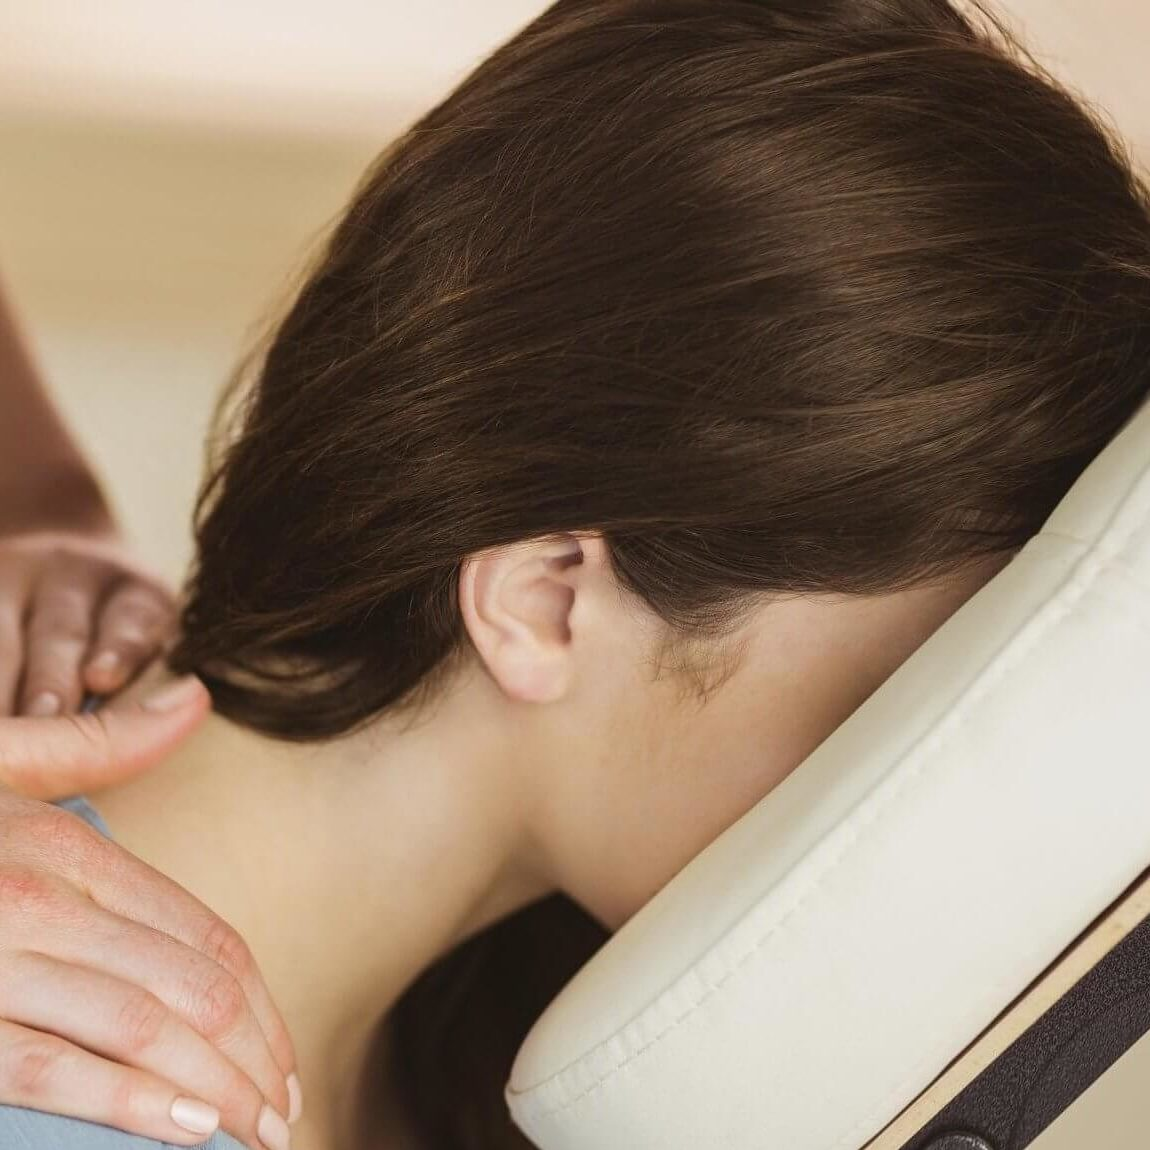 corporate massage, neck closeup